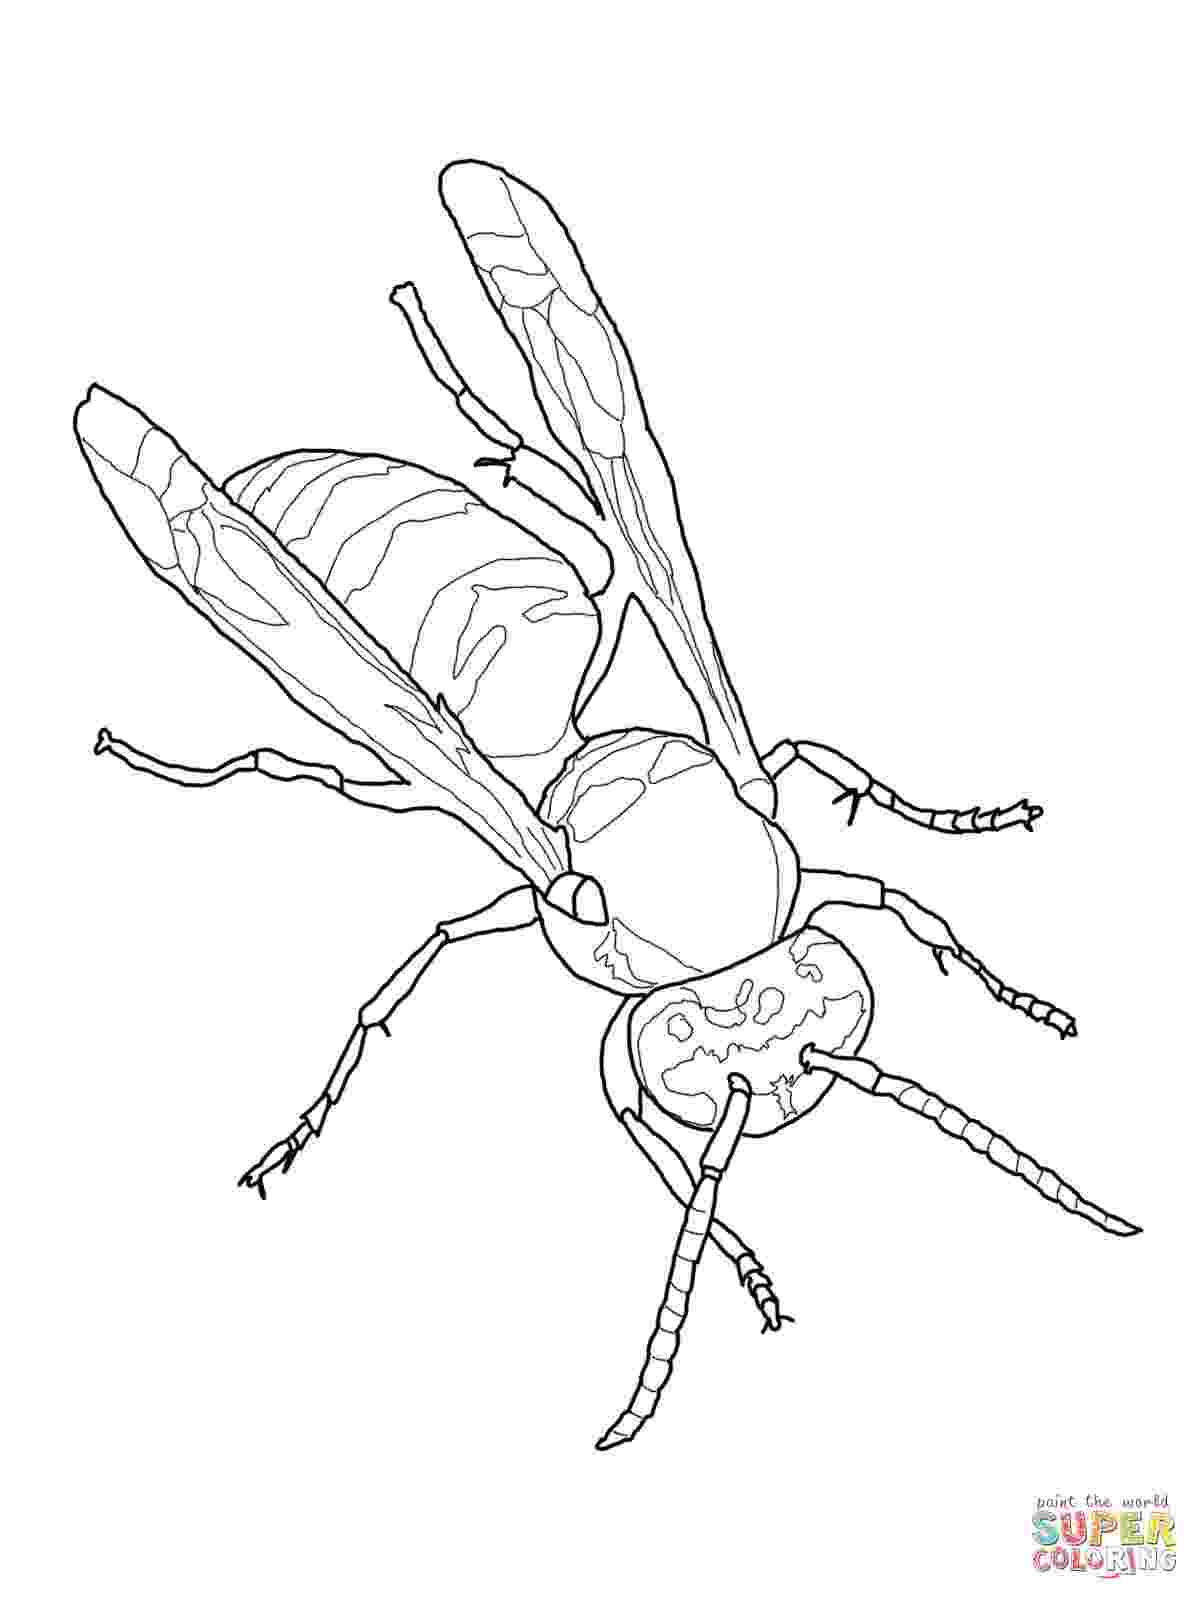 yellow jacket coloring page yellow jacket wasp coloring page free printable coloring page coloring yellow jacket